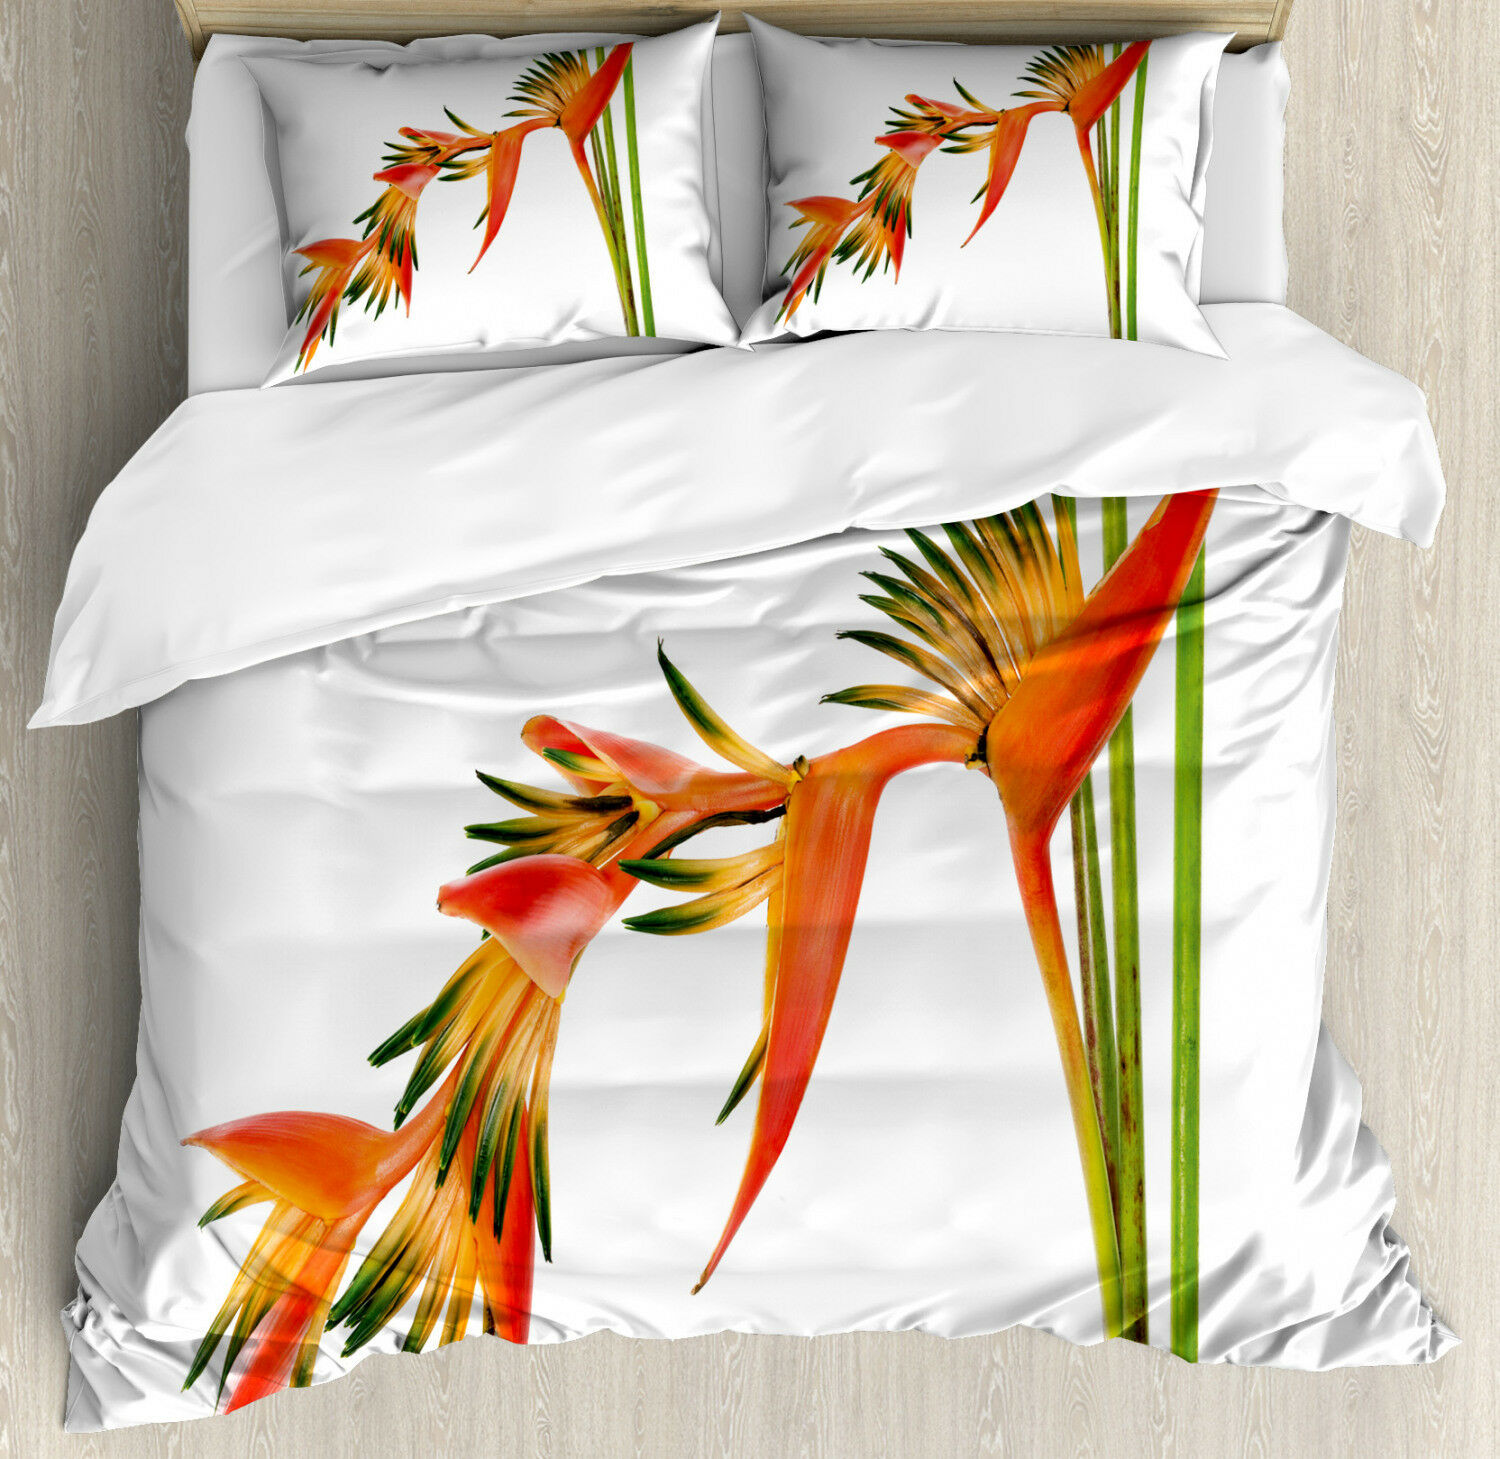 Floral Duvet Cover Set with Pillow Shams Exotic Flower Branch Print